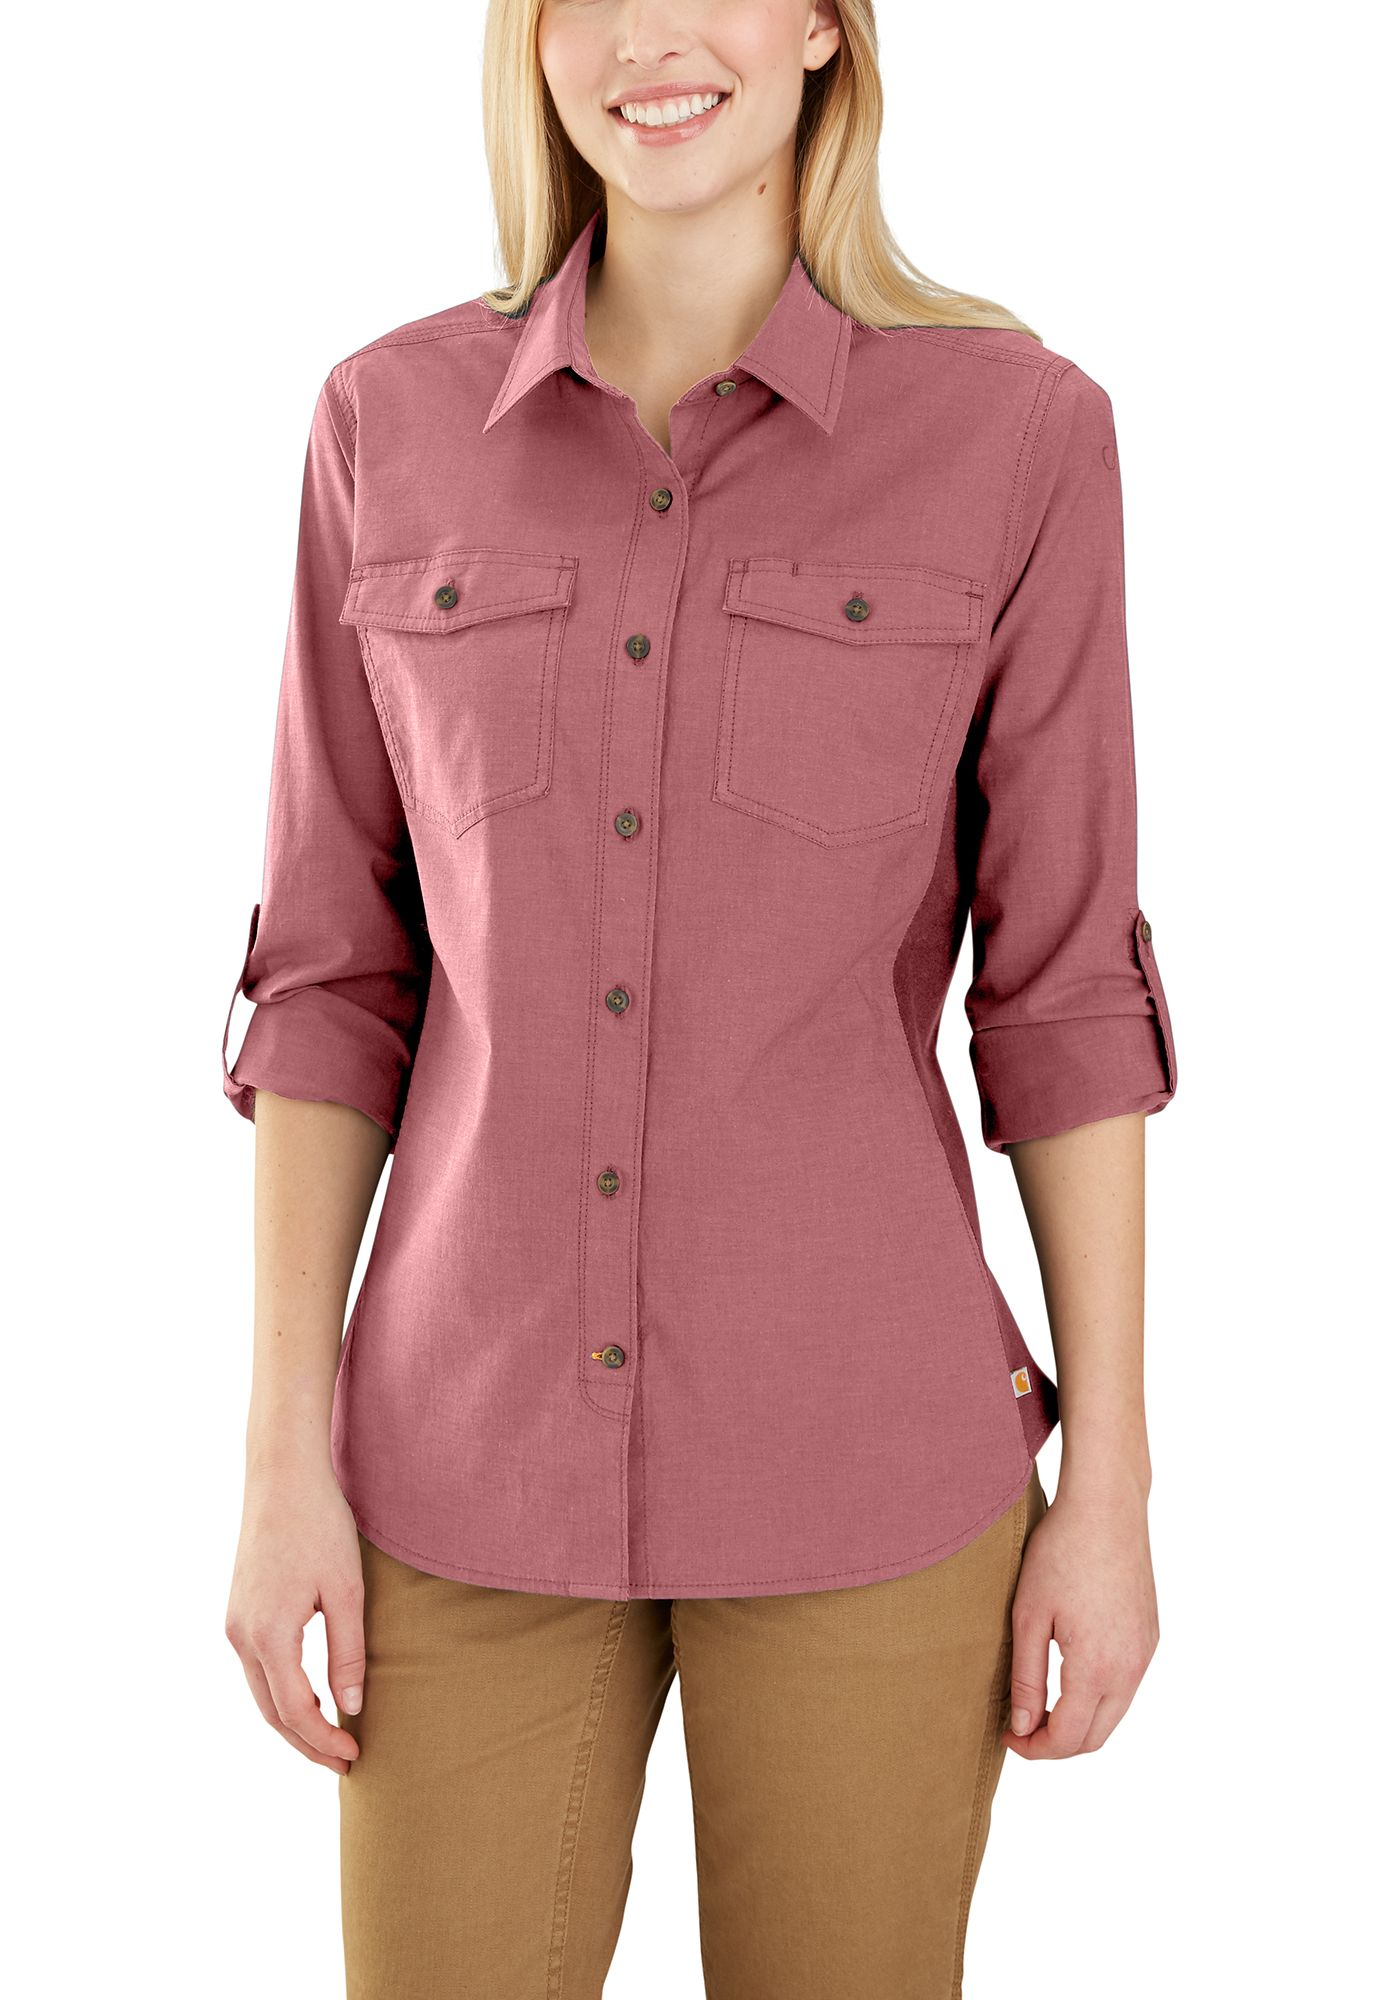 Carhartt Women's Rugged Flex Bozeman Button Down Shirt